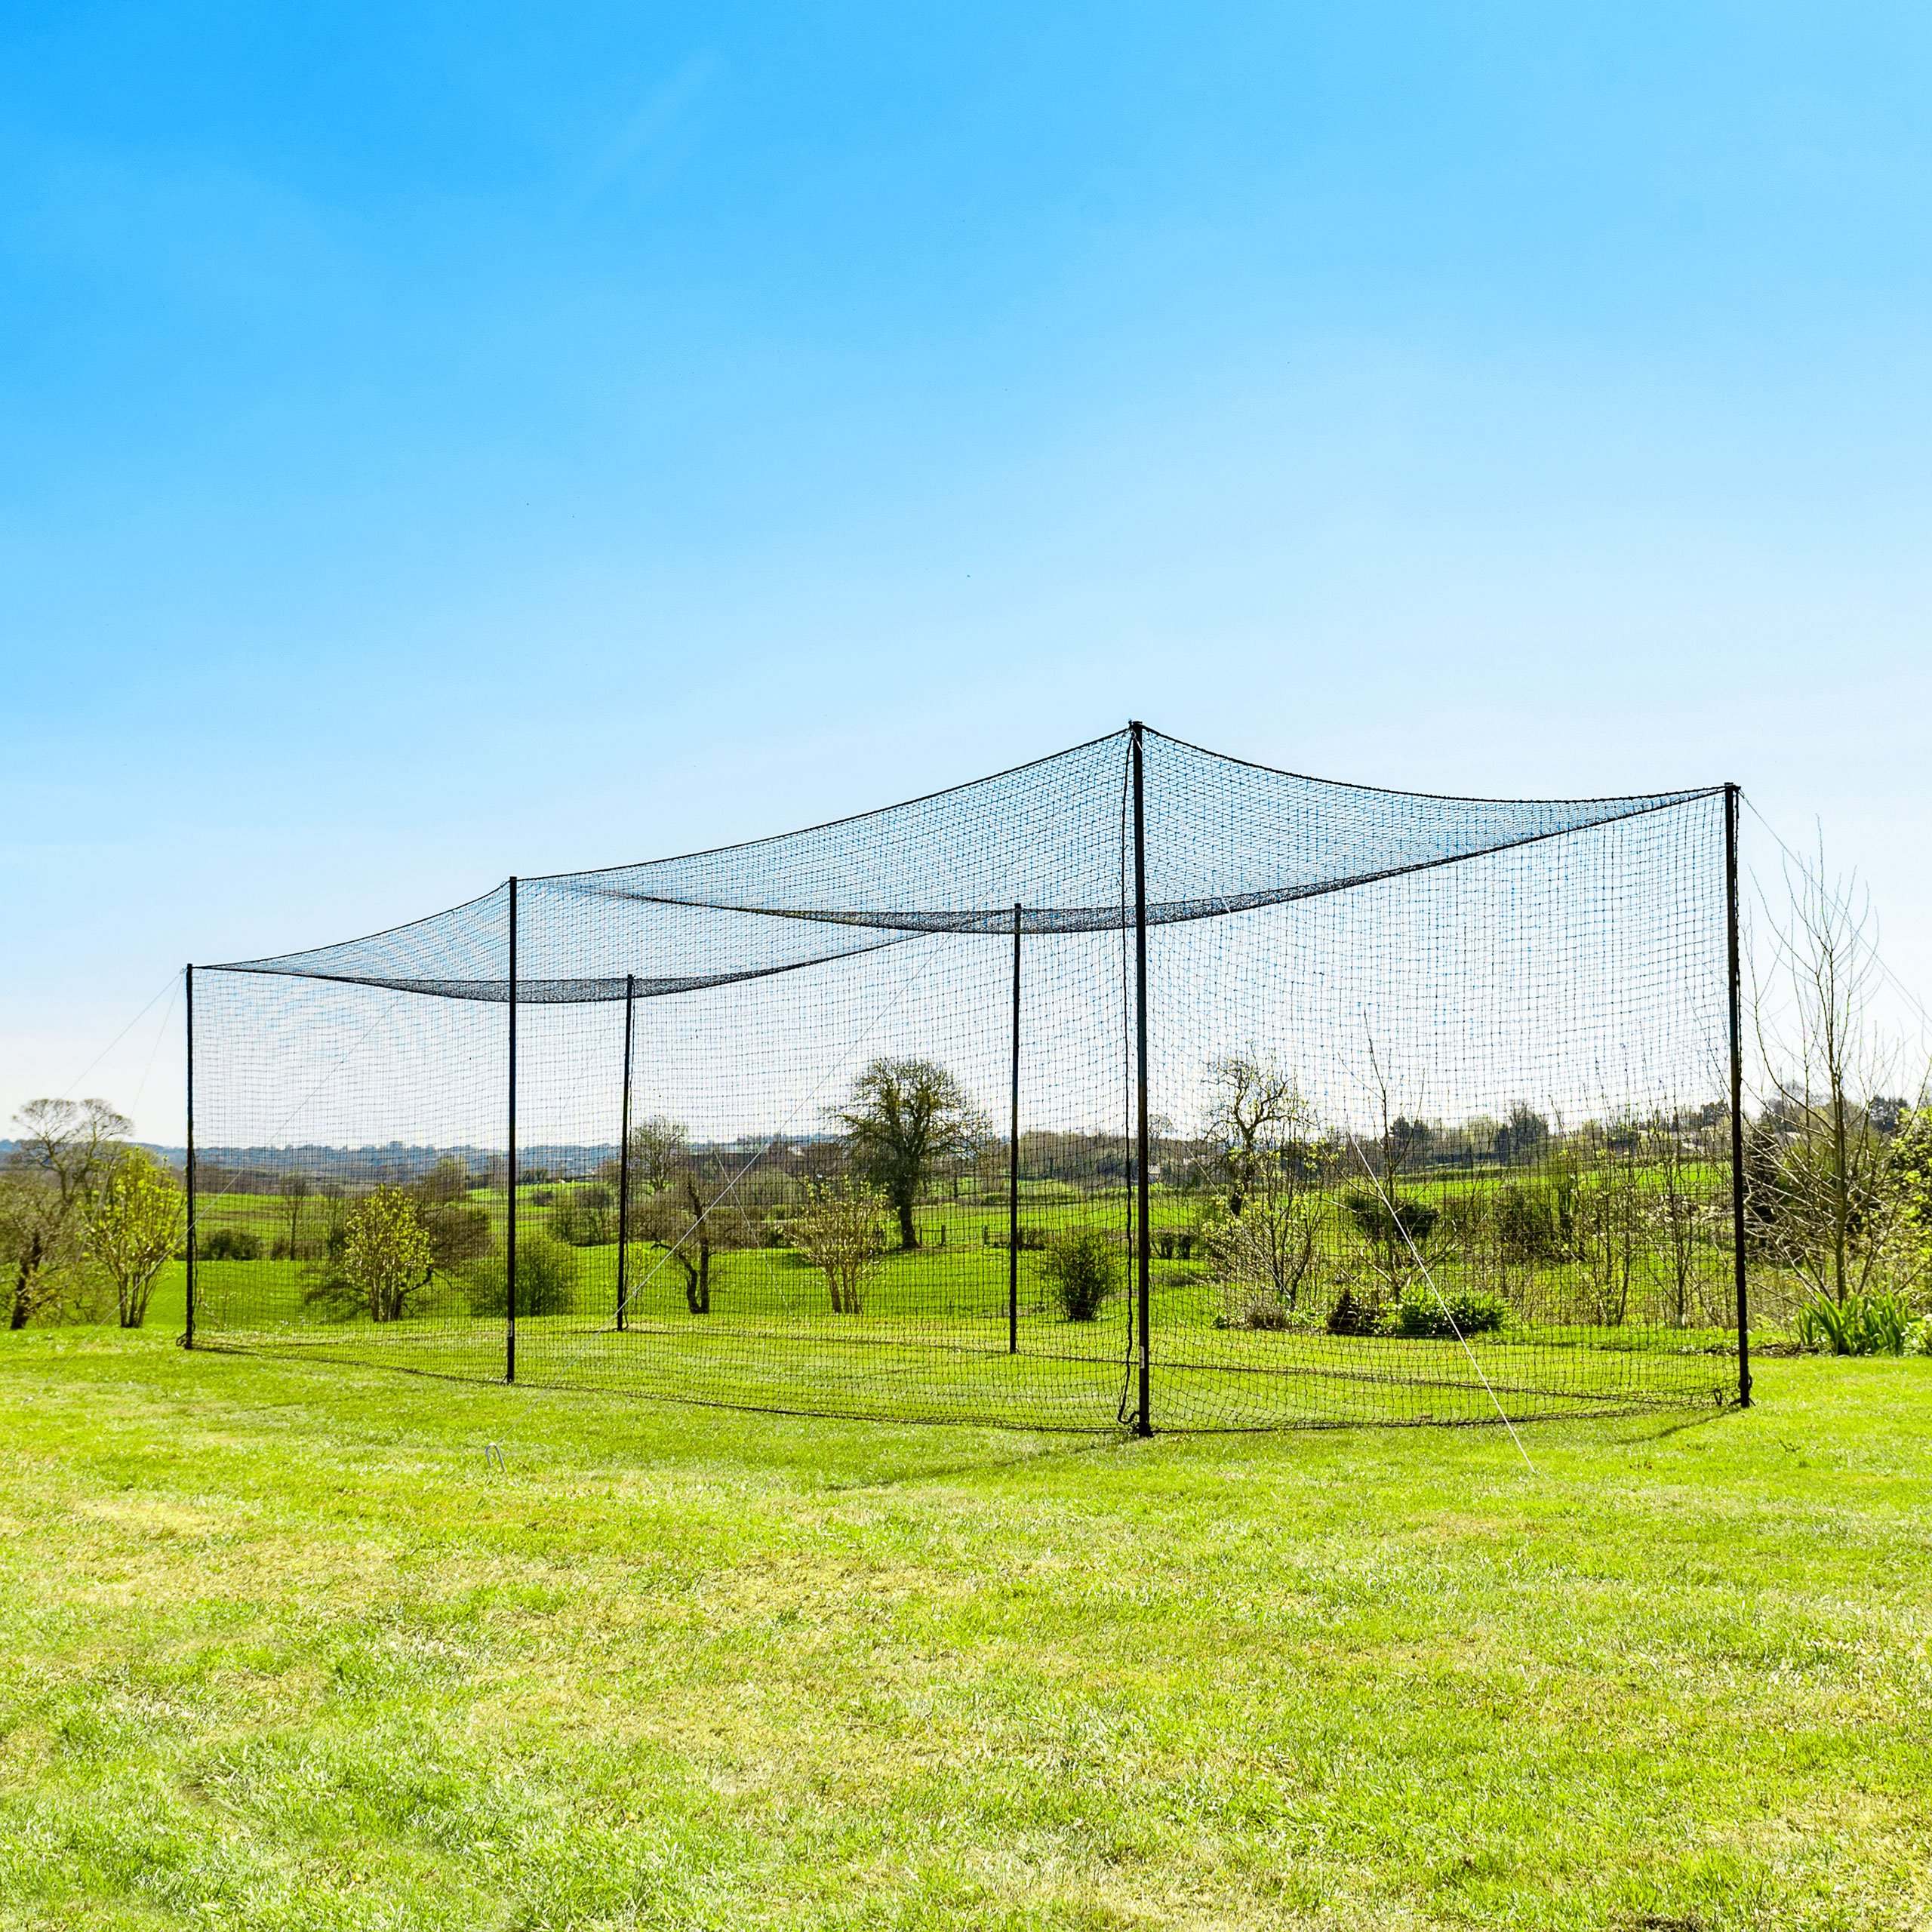 35' Ultimate Baseball Batting Cage [Net & Poles Package] - #42 Heavy Duty Net with Steel Uprights [Net World] 24hr Ship (01. Ultimate Batting Cage) by Net World Sports